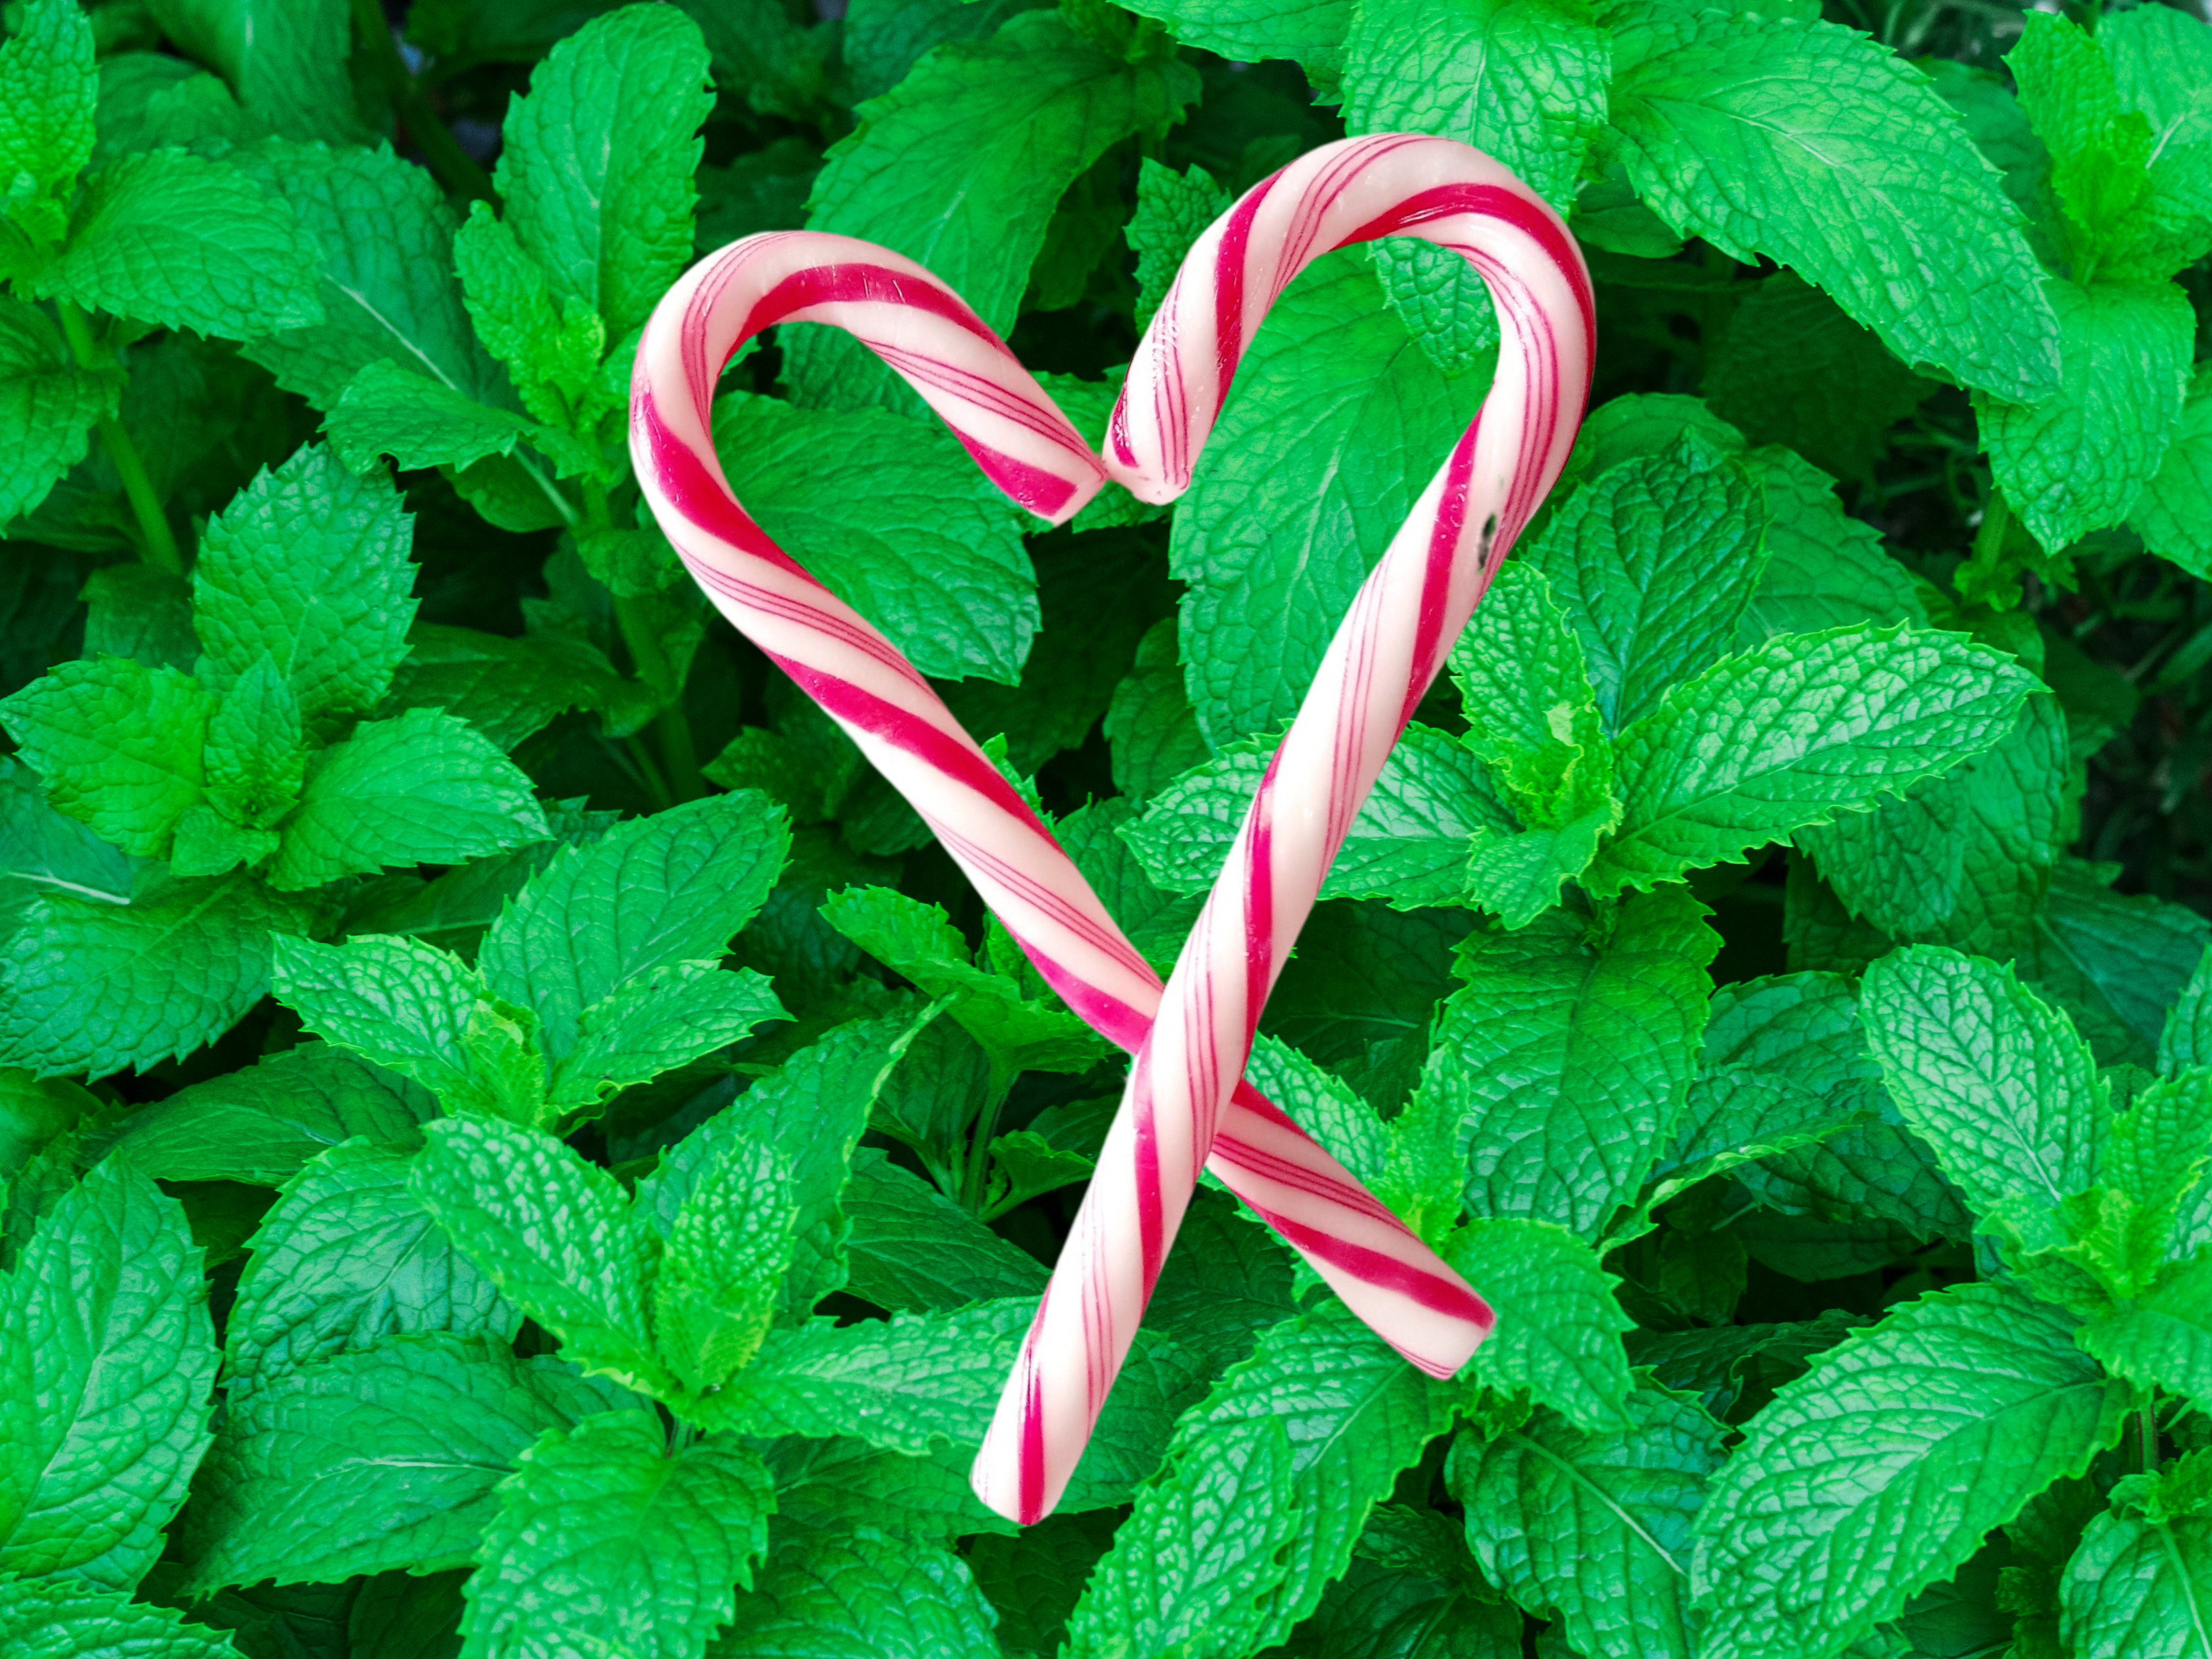 spearmint background with candy canes